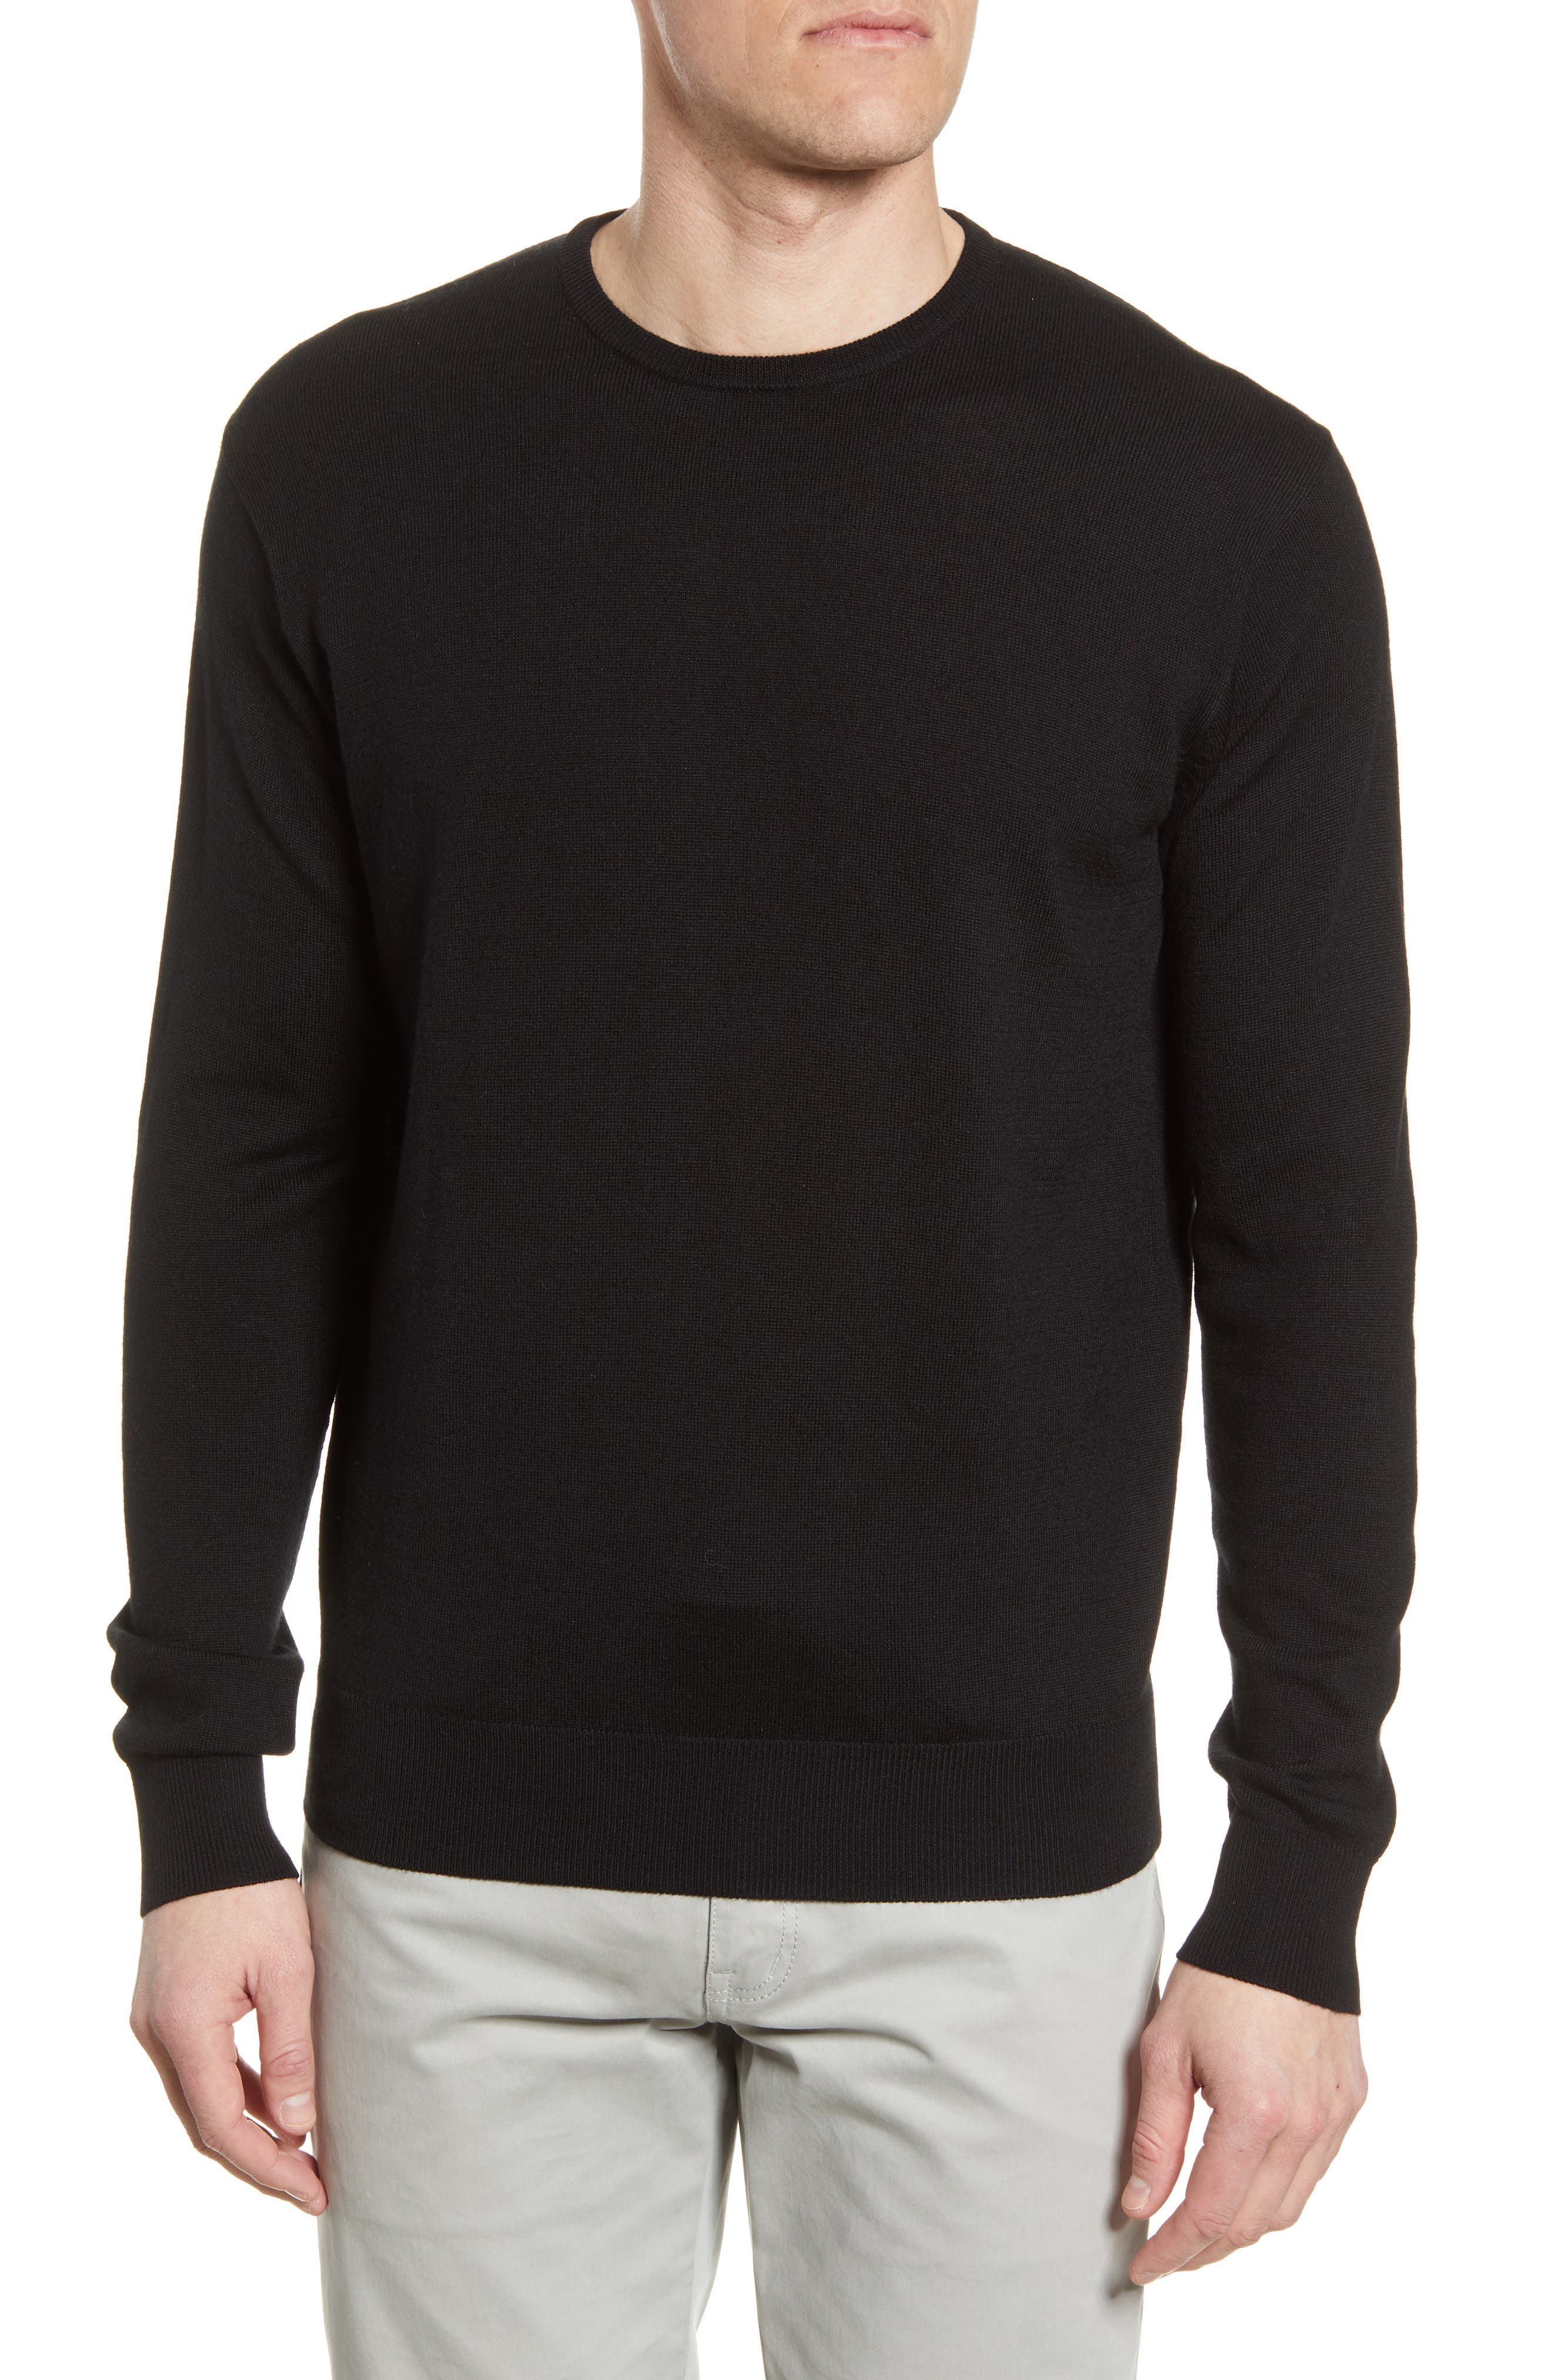 A lightweight crewneck sweater that\\\'s perfect for gifting is made from a refined pima-cotton blend that includes a kiss of cashmere for softness. Style Name: Peter Millar Crown Crewneck Sweater. Style Number: 5880984. Available in stores.